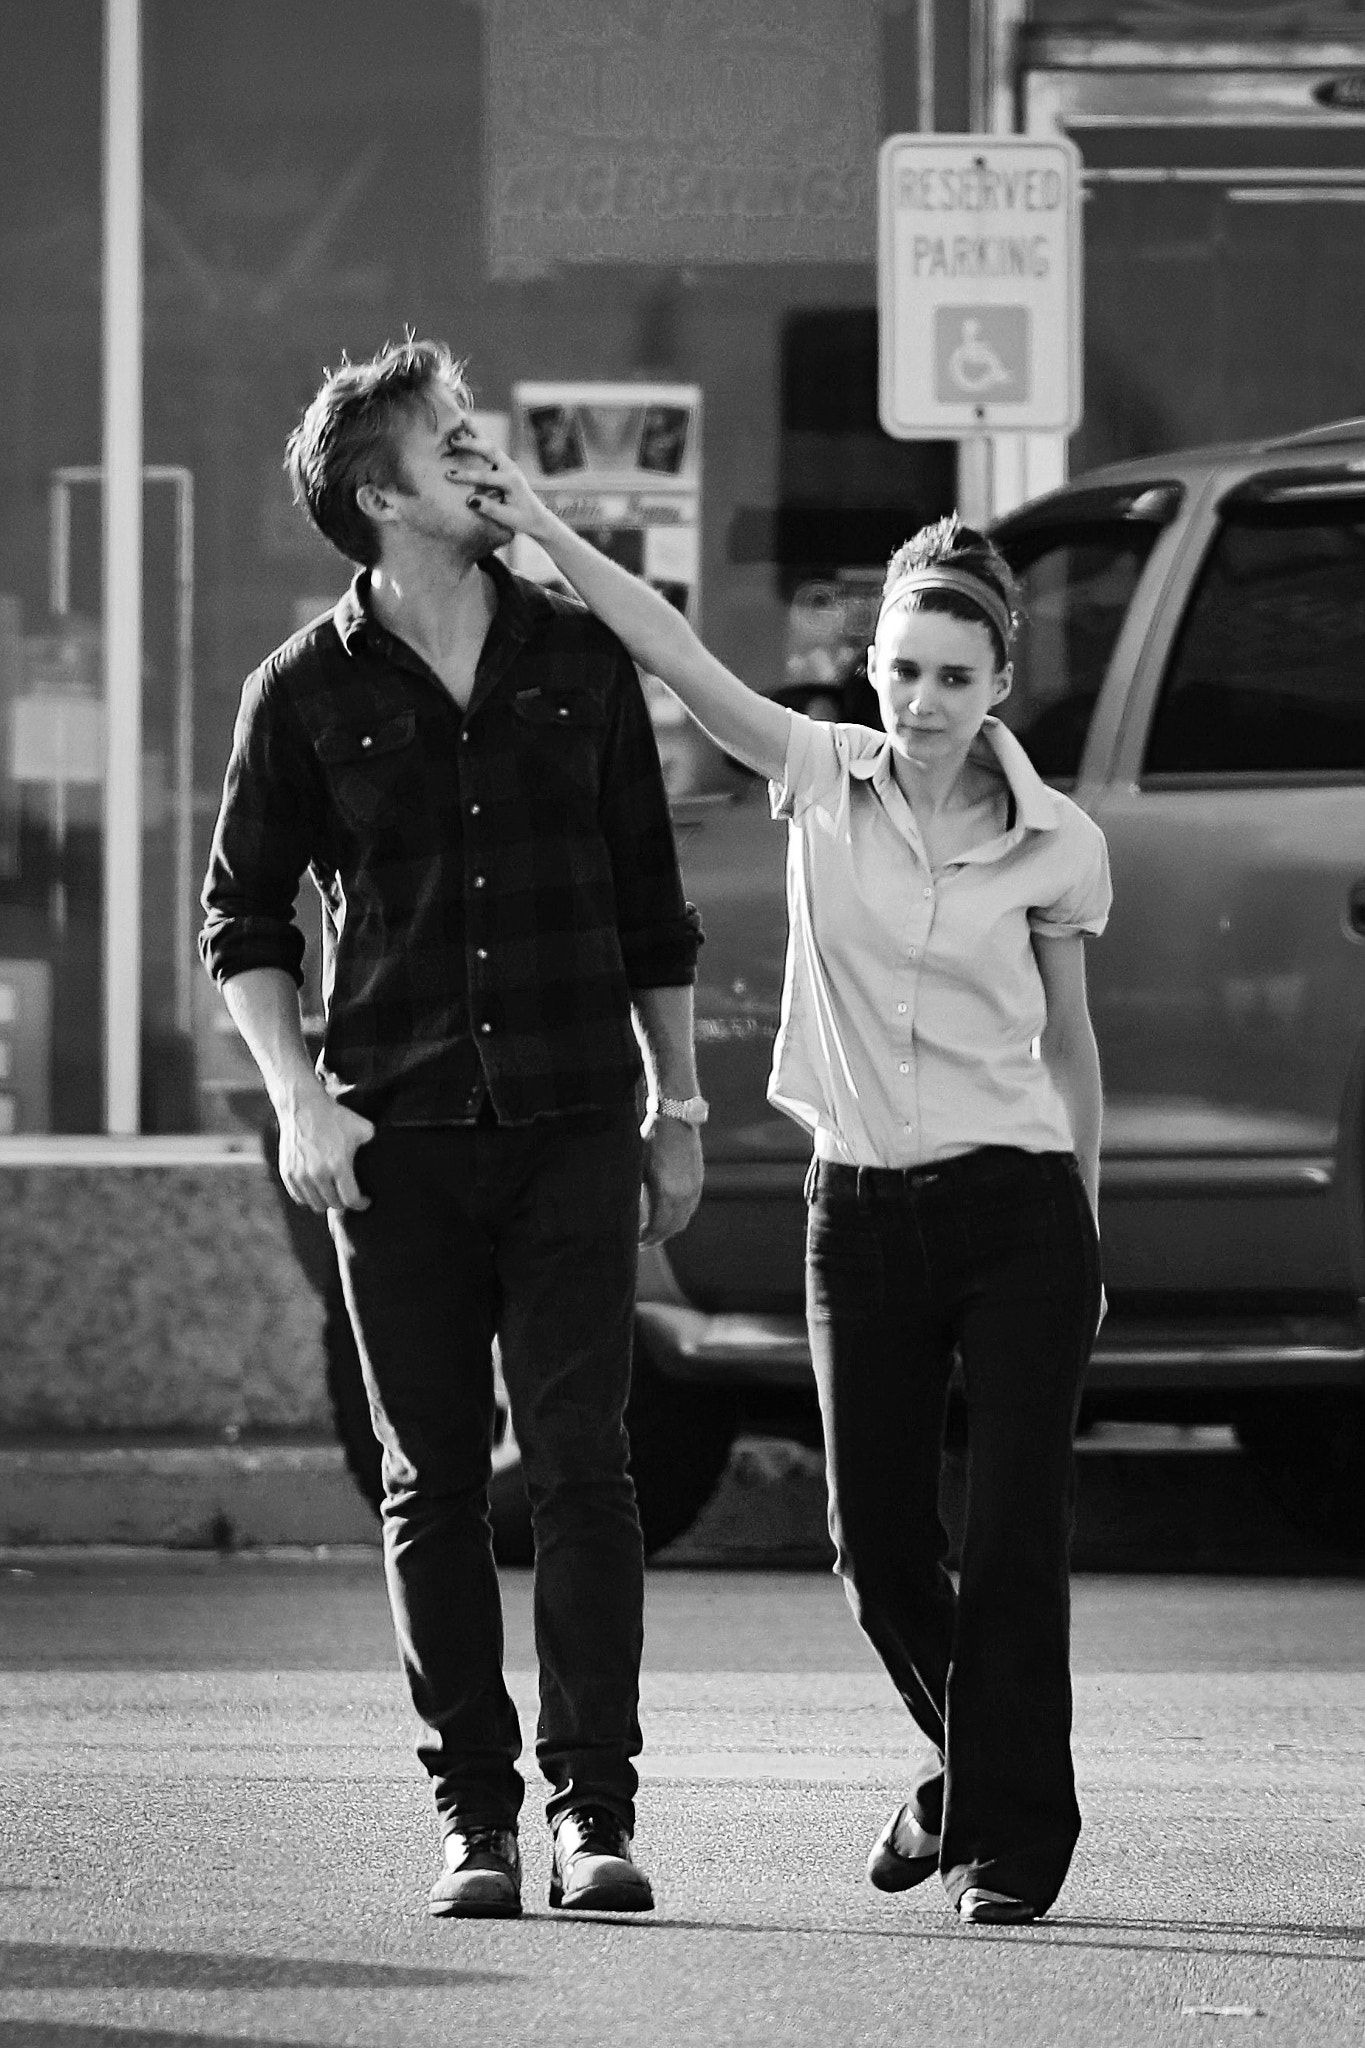 Ryan Gosling and Rooney Mara - Ryan Gosling and Rooney Mara on set of Untitled Terrence Malick Film in Austin Texas 2012.